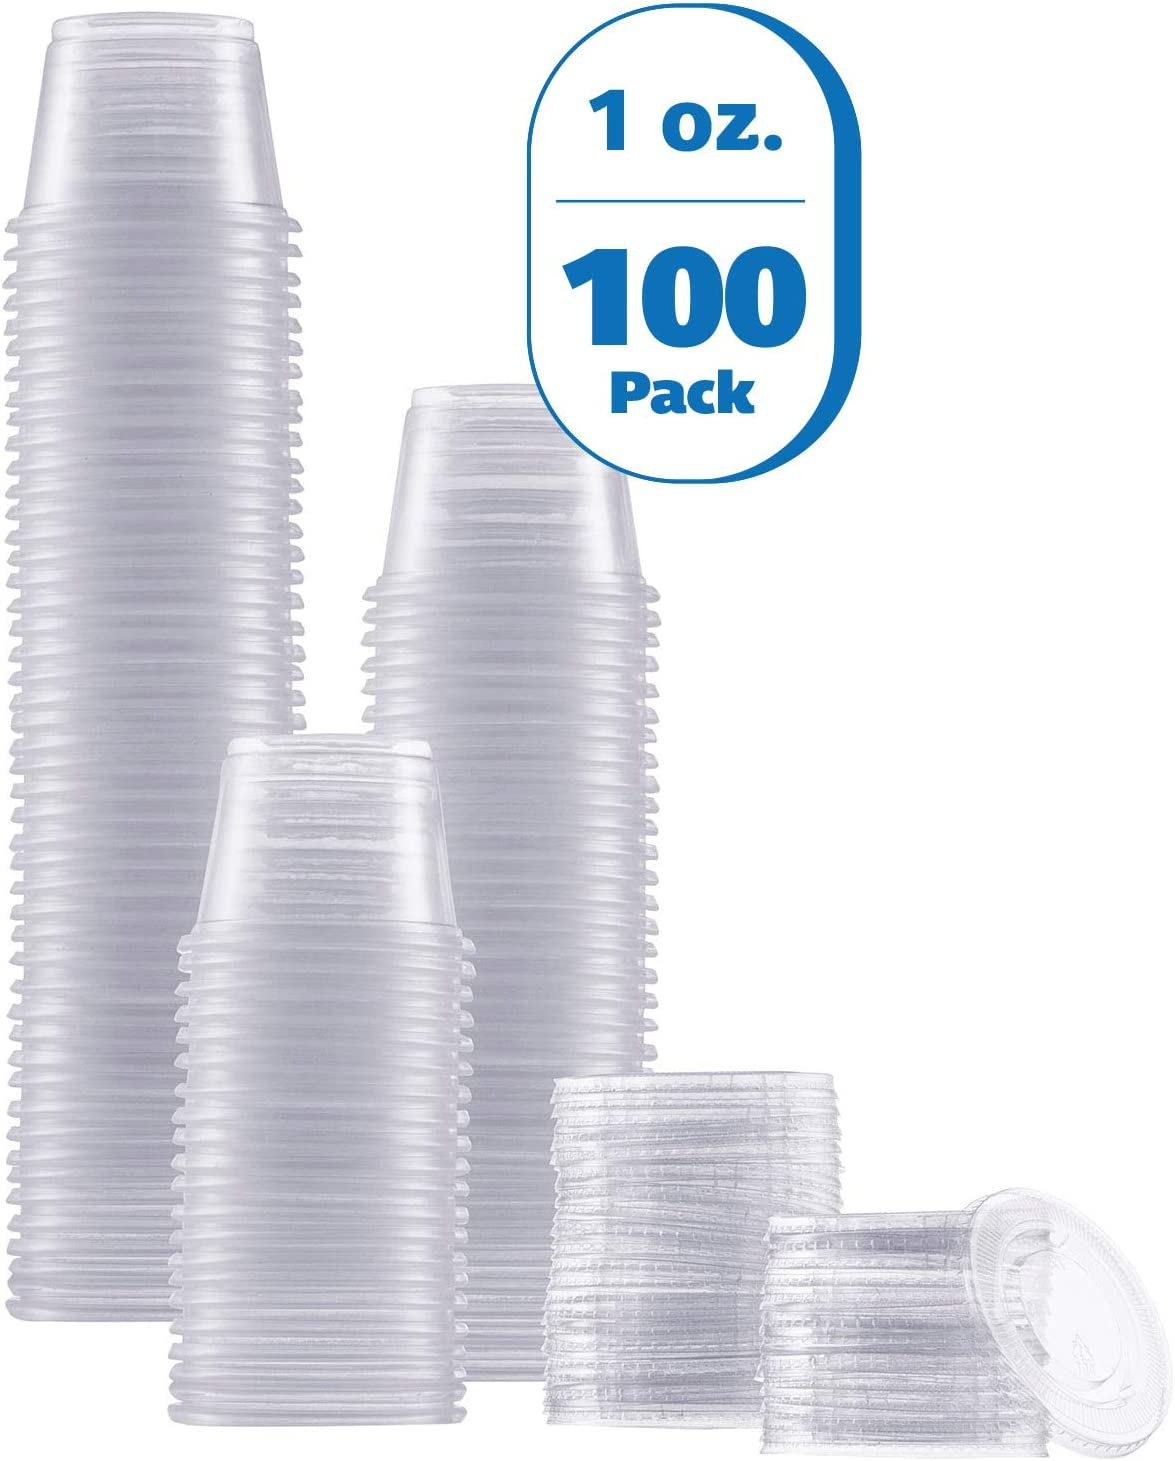 Zeml Portion Cups with Lids (1 Ounces, 100 Pack) | Disposable Plastic Cups for Meal Prep, Portion Control, Salad Dressing, Jello Shots, Slime & Medicine | Premium Small Plastic Condiment Container